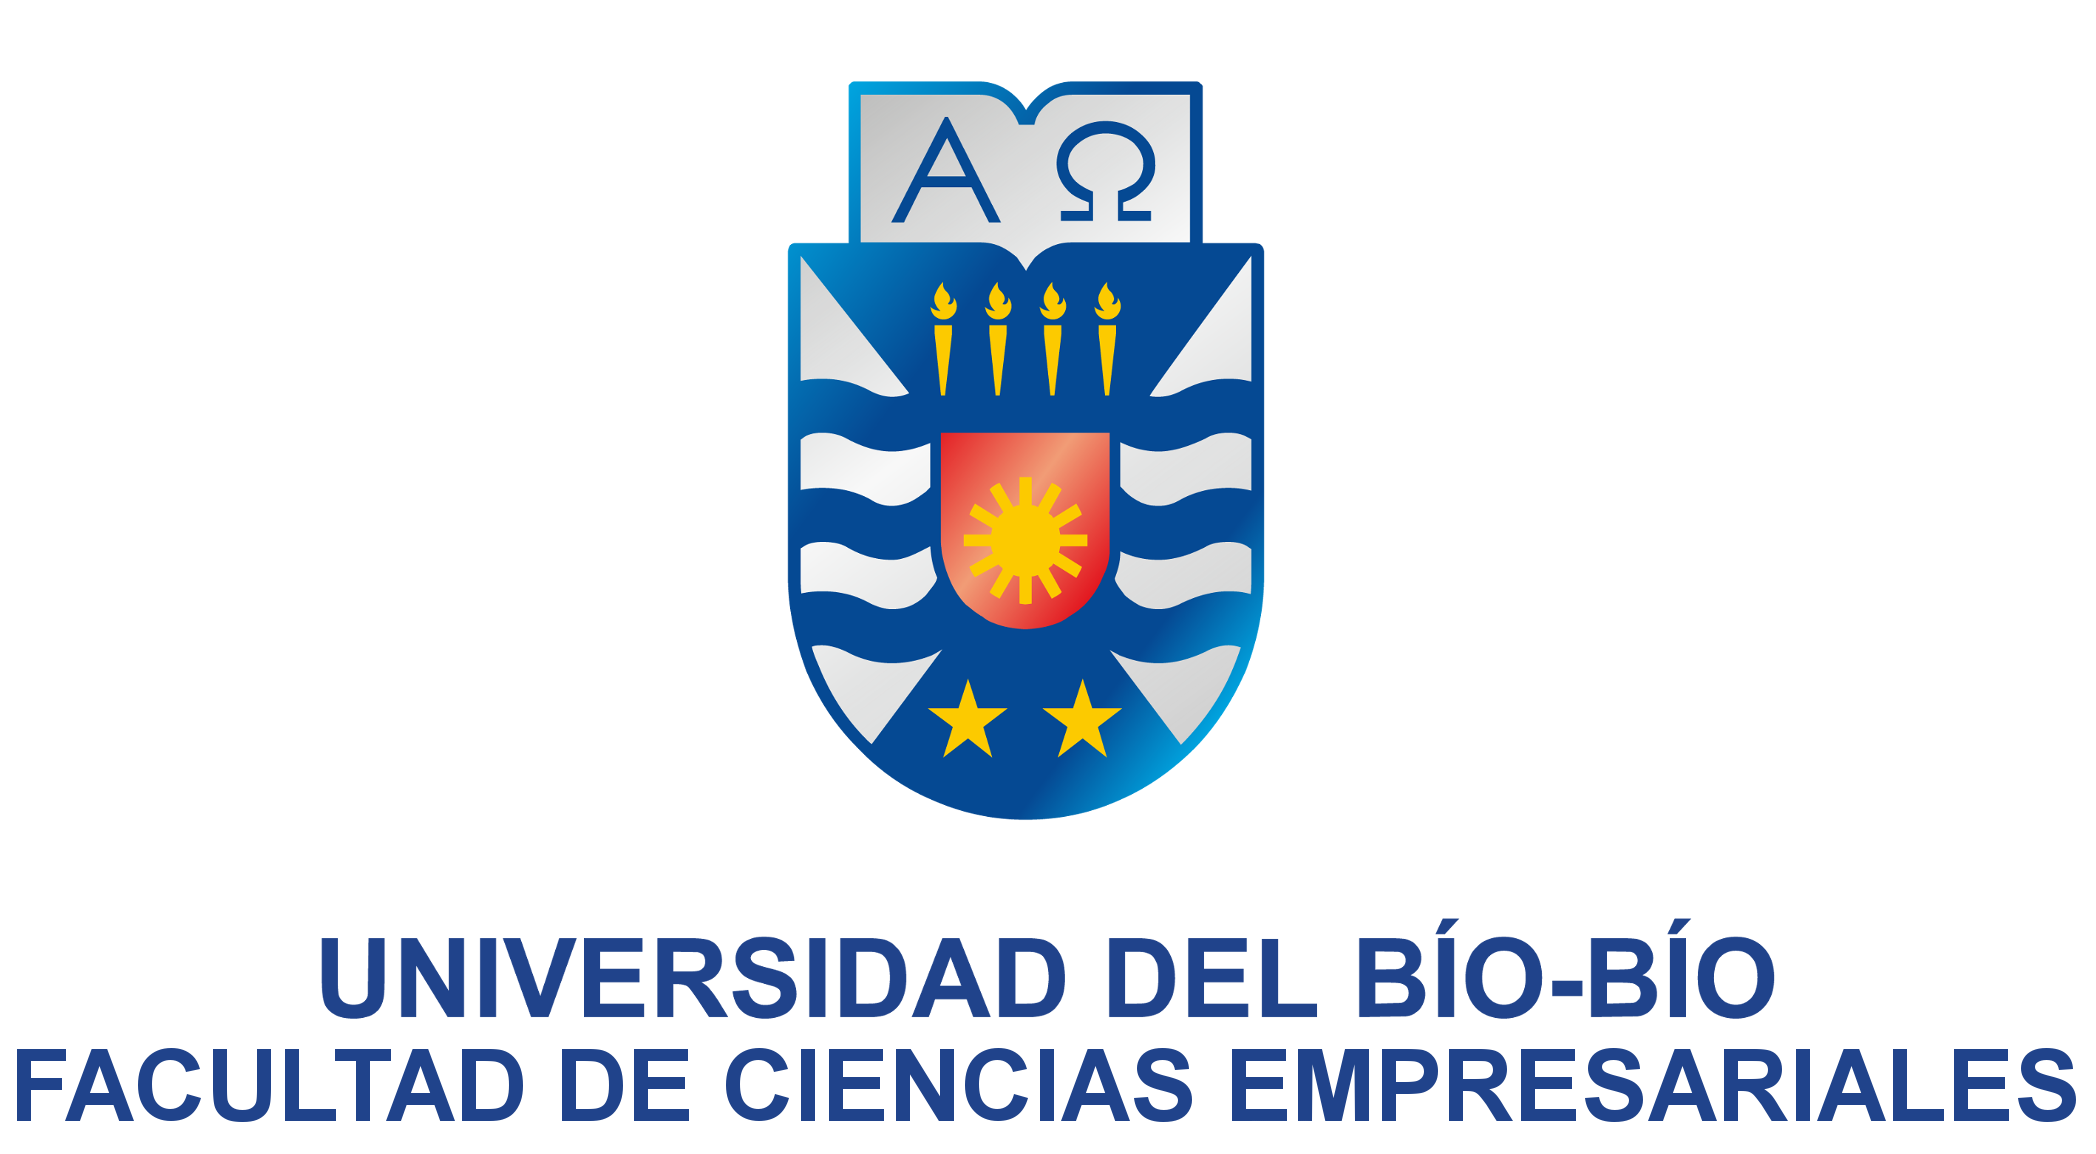 Universidad del Bío-Bío